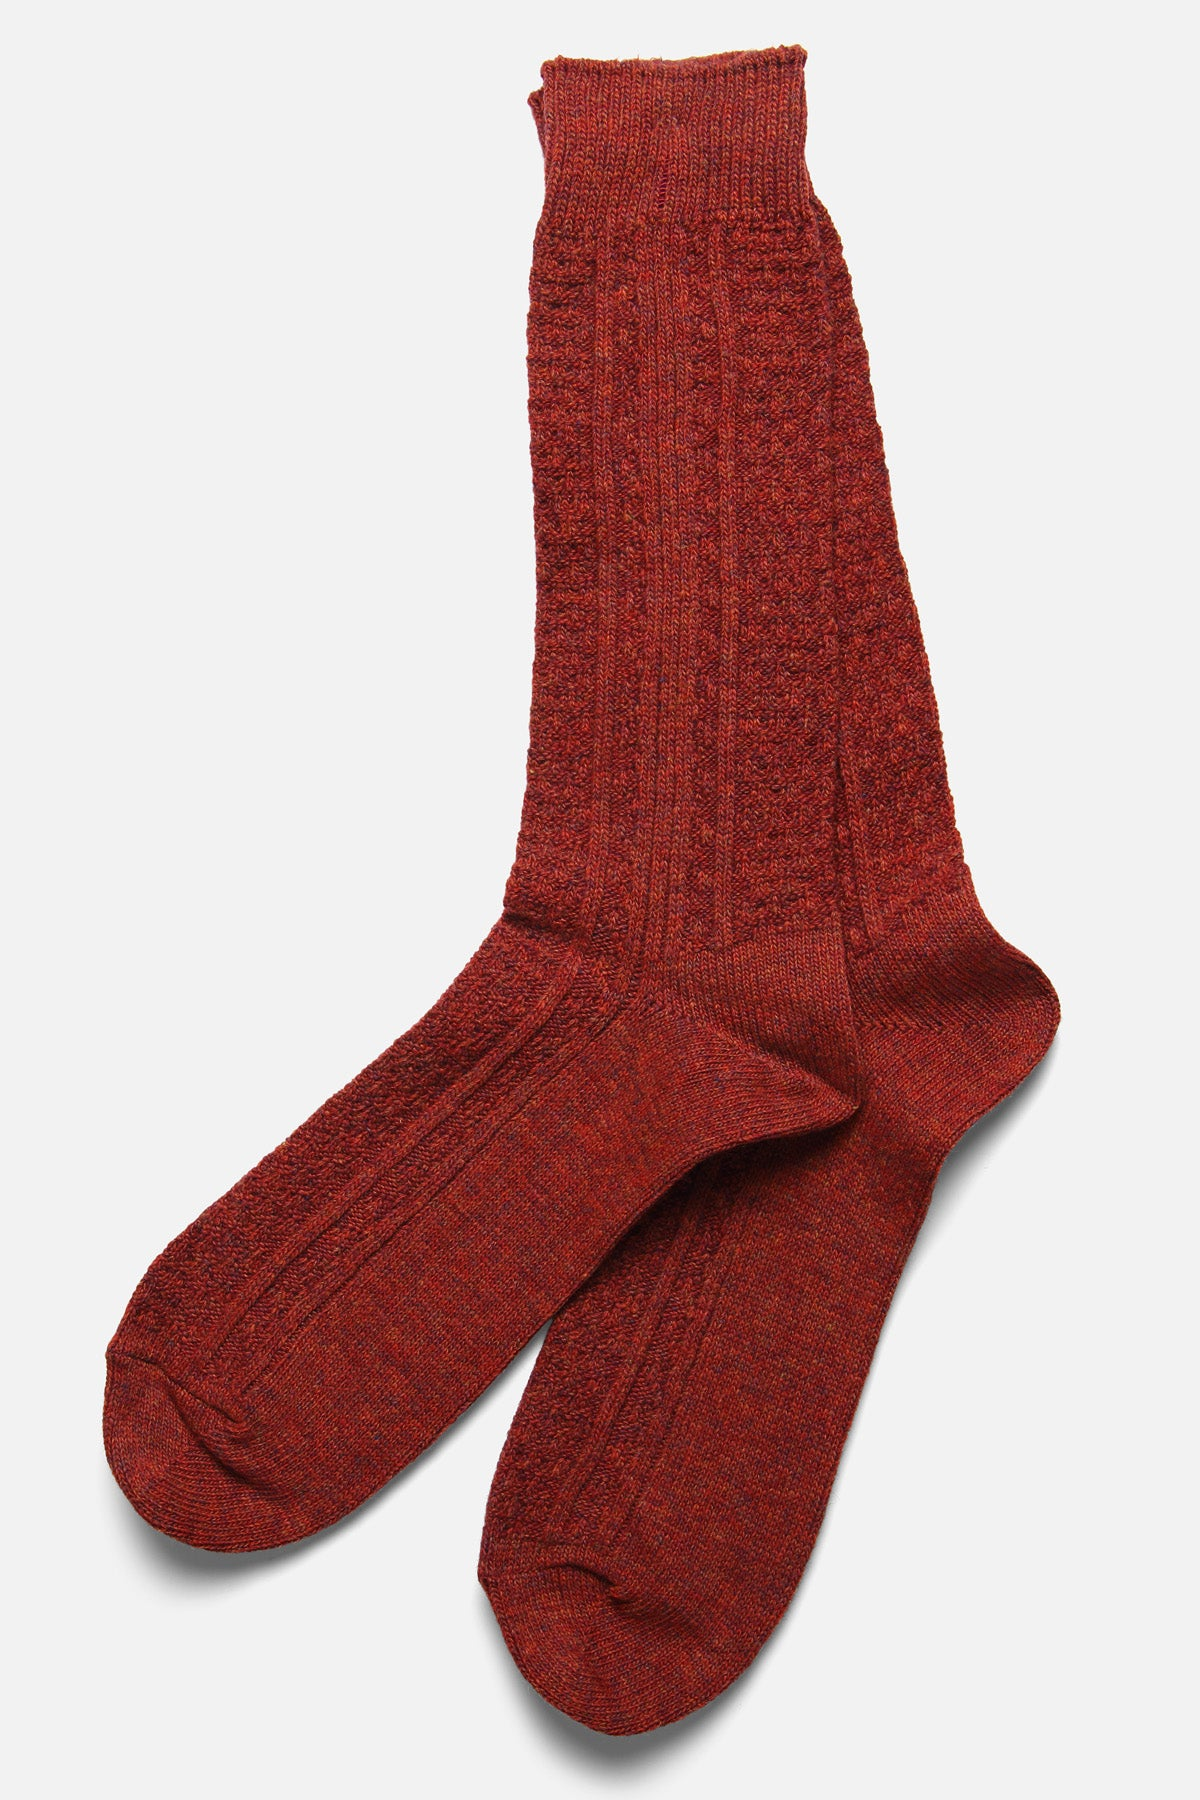 ANONYMOUS ISM - CASHMERE WOOL LINK CREW IN RED - Fortune Goods